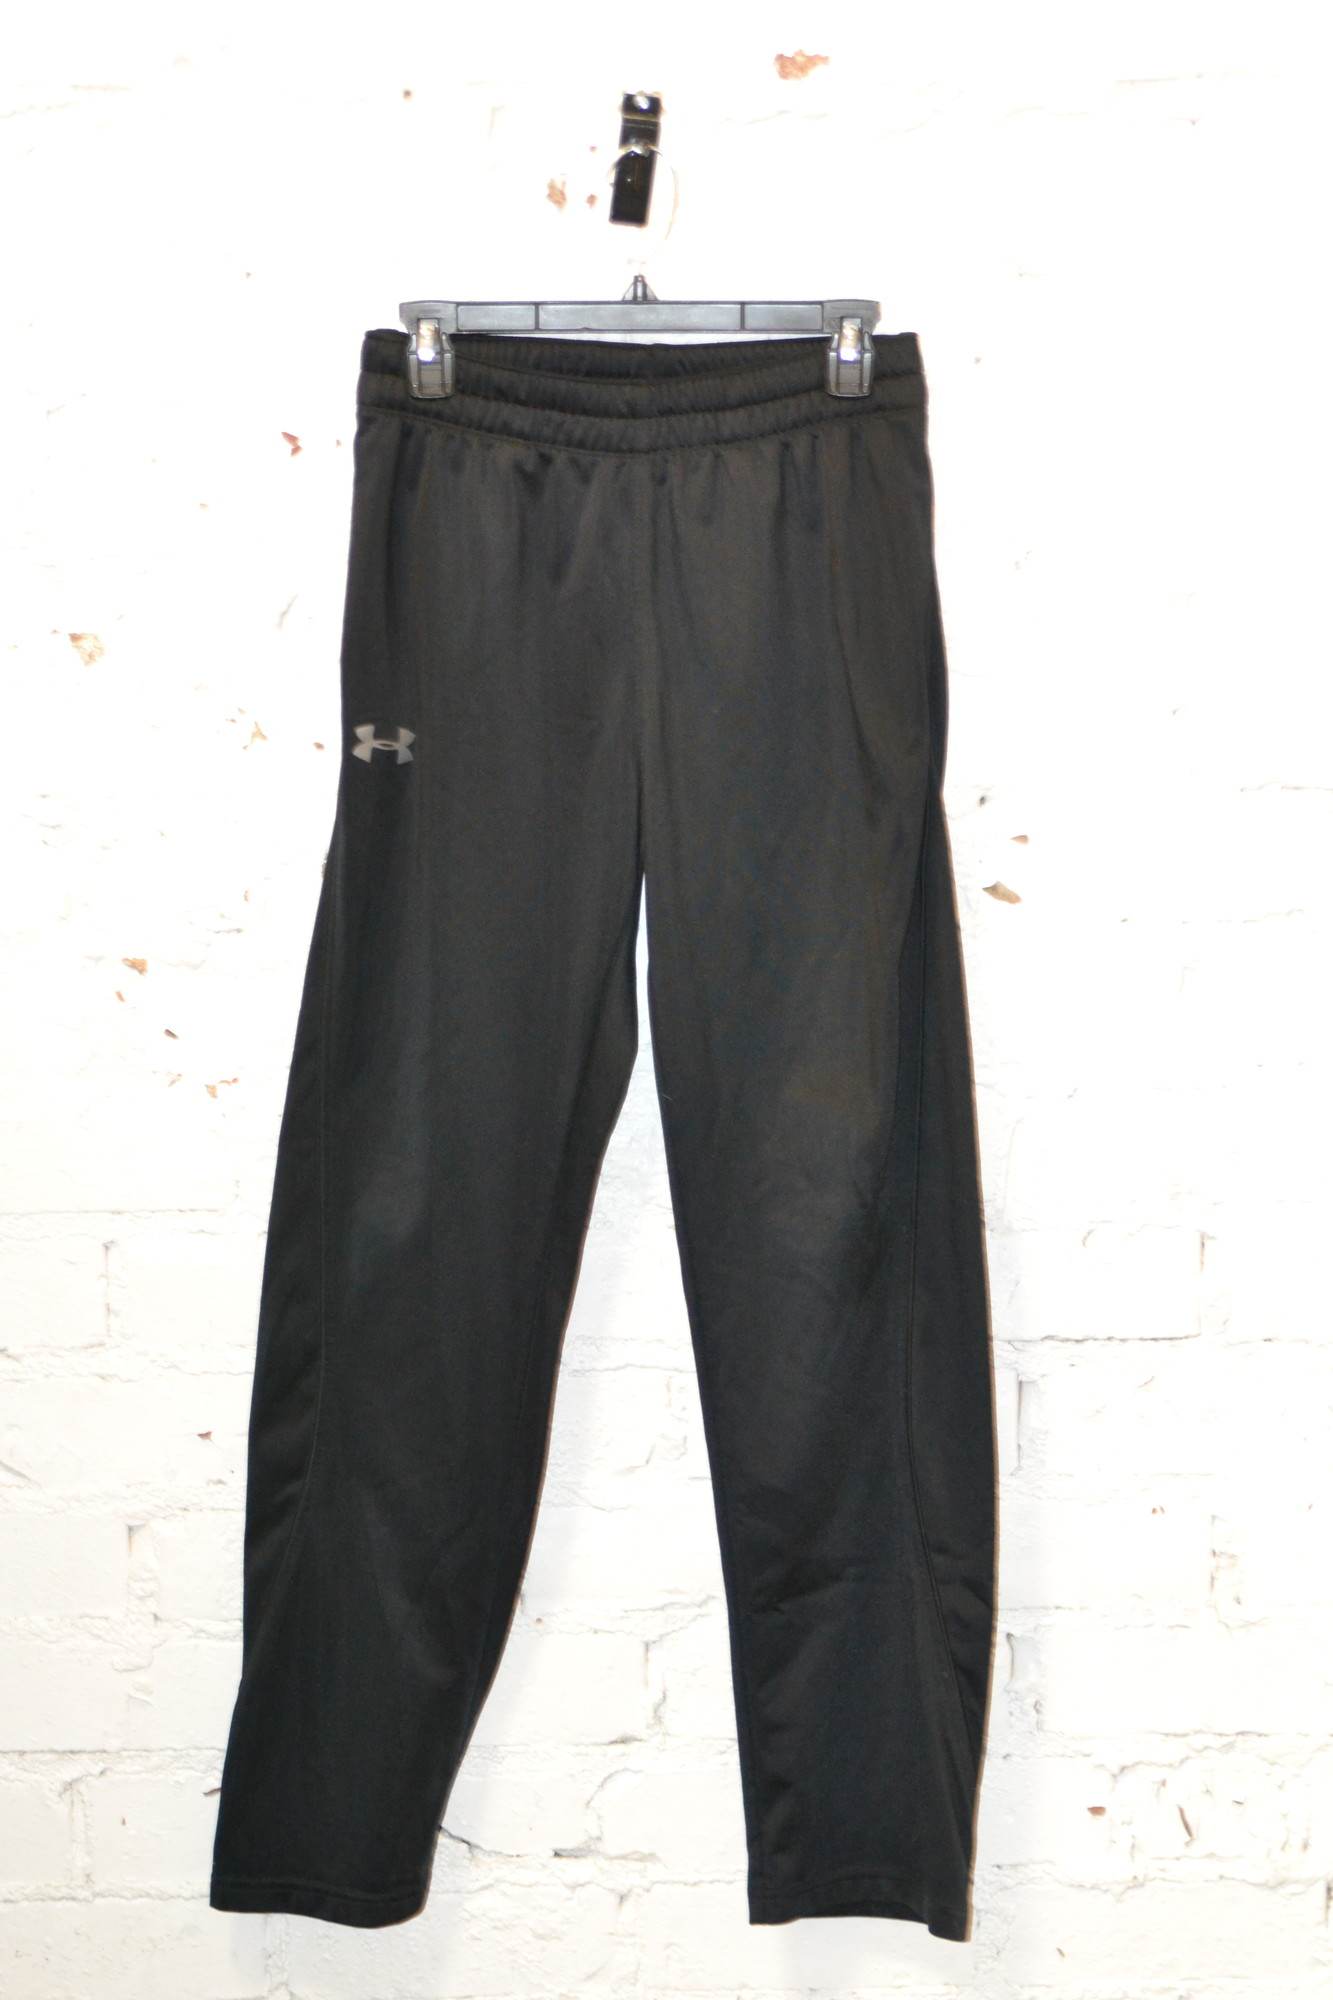 -Under Armour<br /> -Black<br /> -Drawstring waistband<br /> -Excellent condition<br /> -Size small